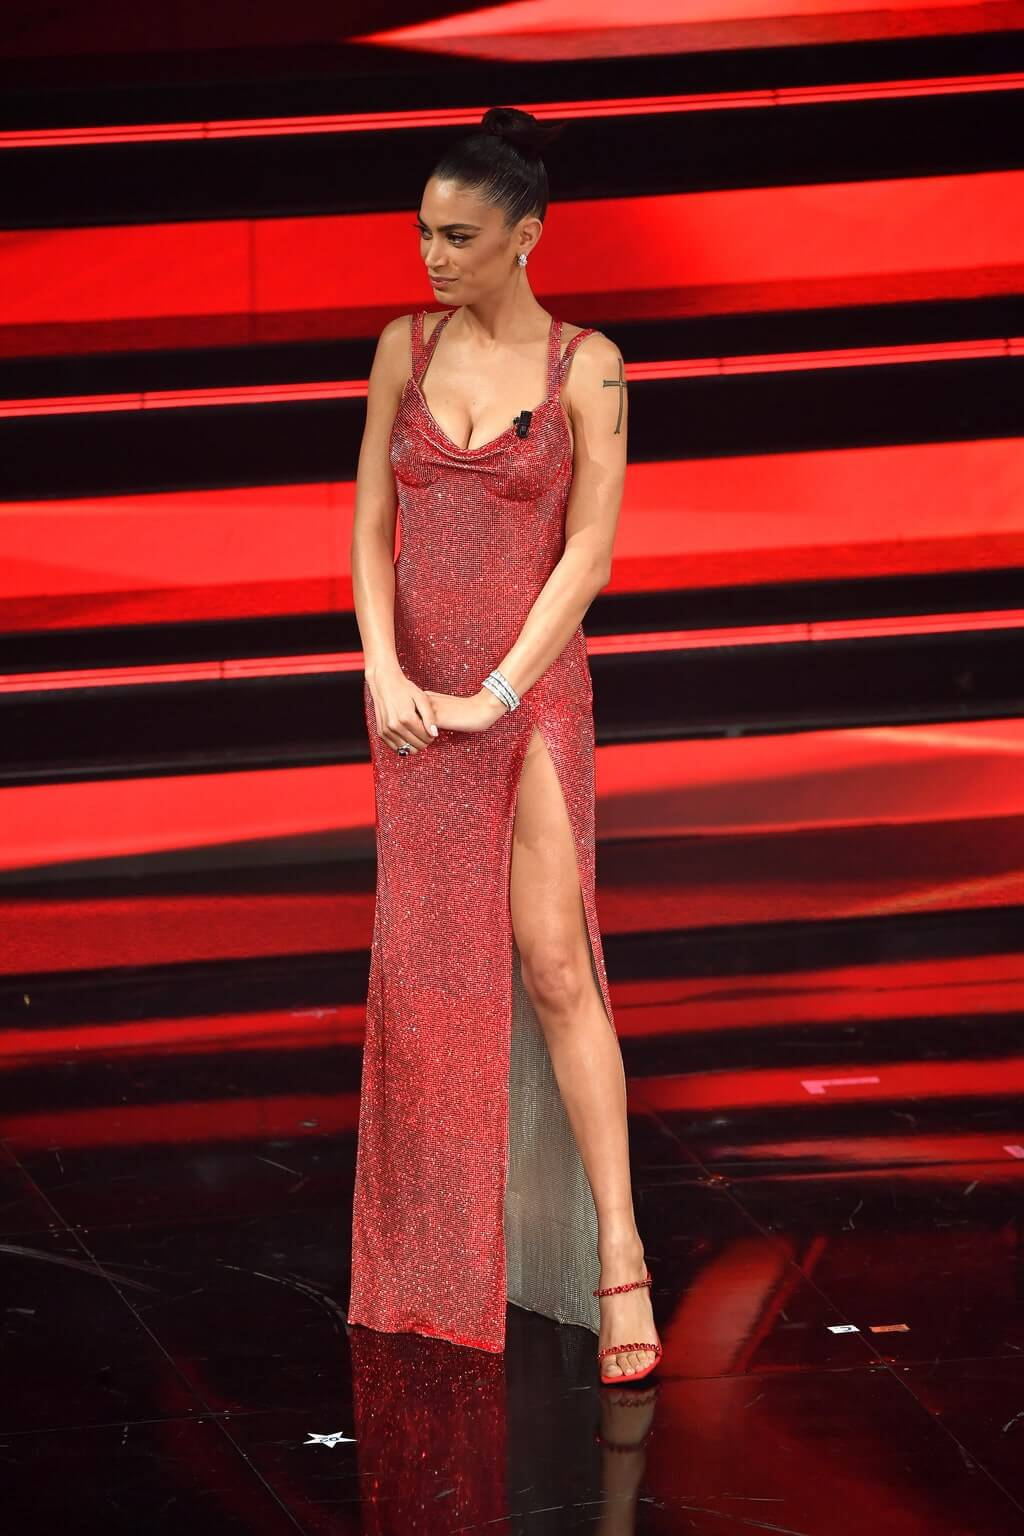 Sanremo 2021 look seconda serata Elodie Life&People Magazine LifeandPeople.it